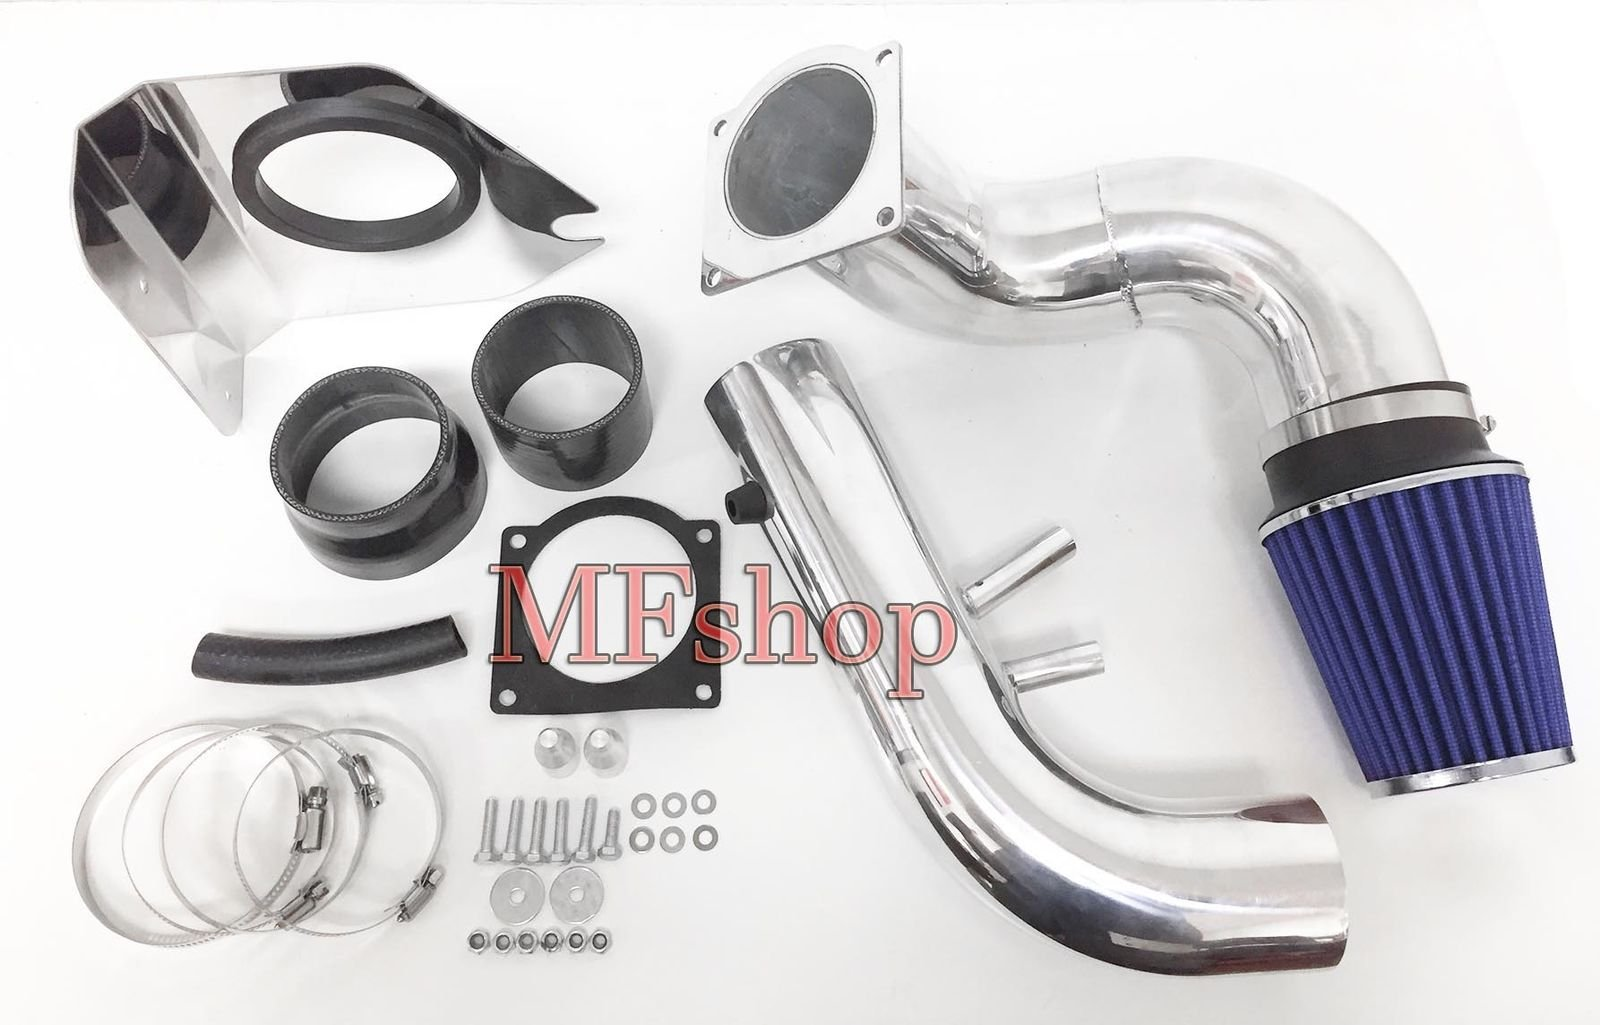 1996 1997 1998 1999 2000 2001 2002 2003 2004 Ford Mustang GT with 4.6L V8 Engine Cold Air Heat Shield Intake Filter Kit System (Black Accessories with Blue Filter)